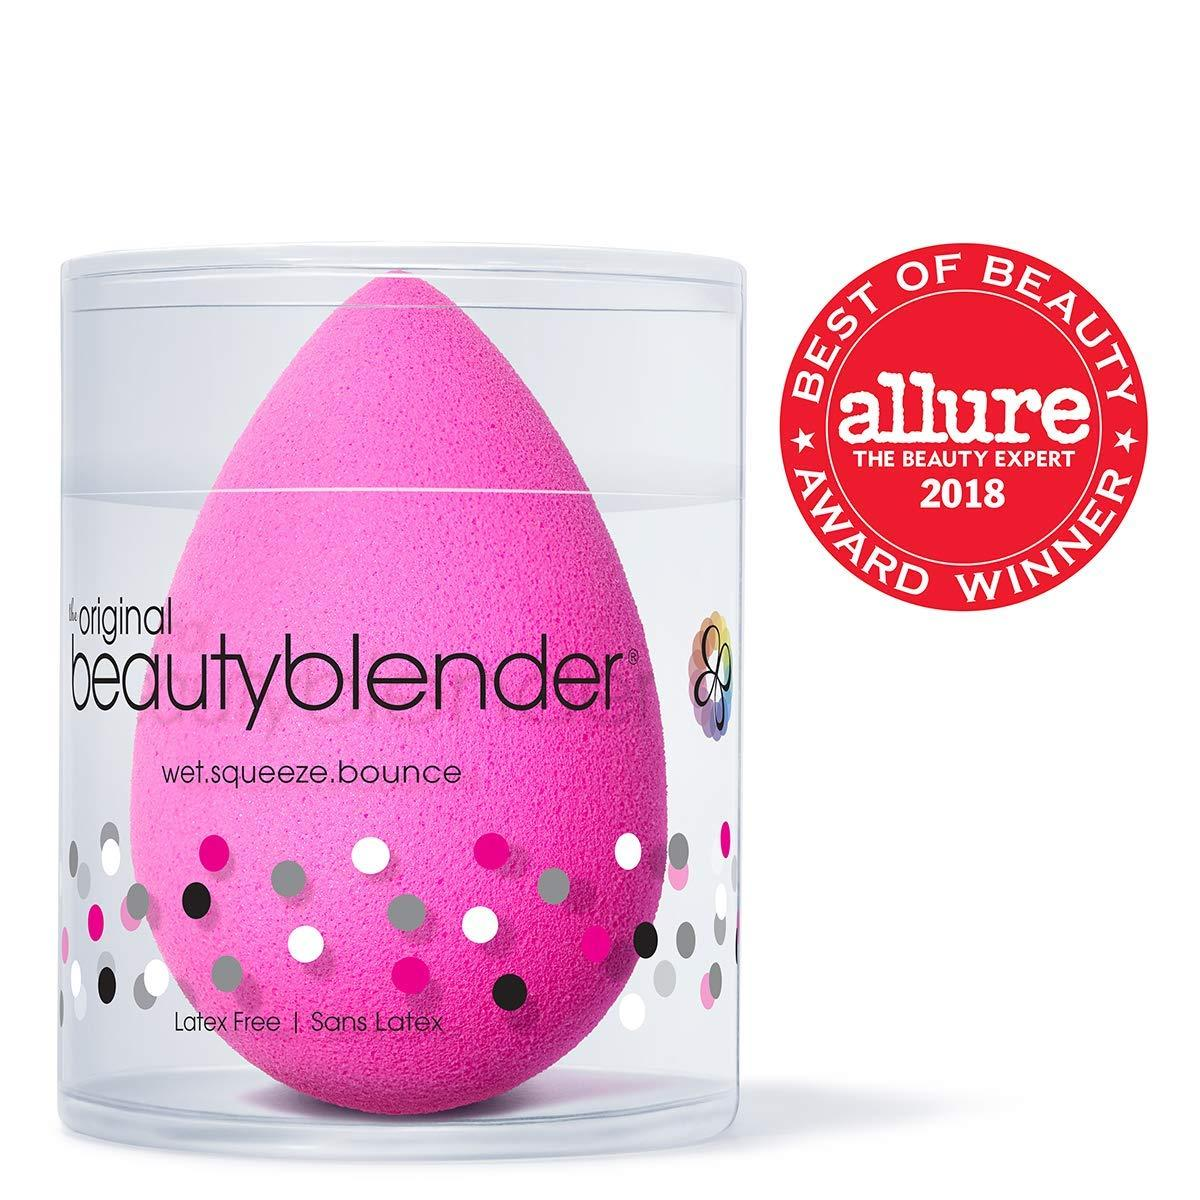 Beauty Blender Makeup Sponge Foundation Cosmetic Puff (inspired Product) - Pink By Skinderella.